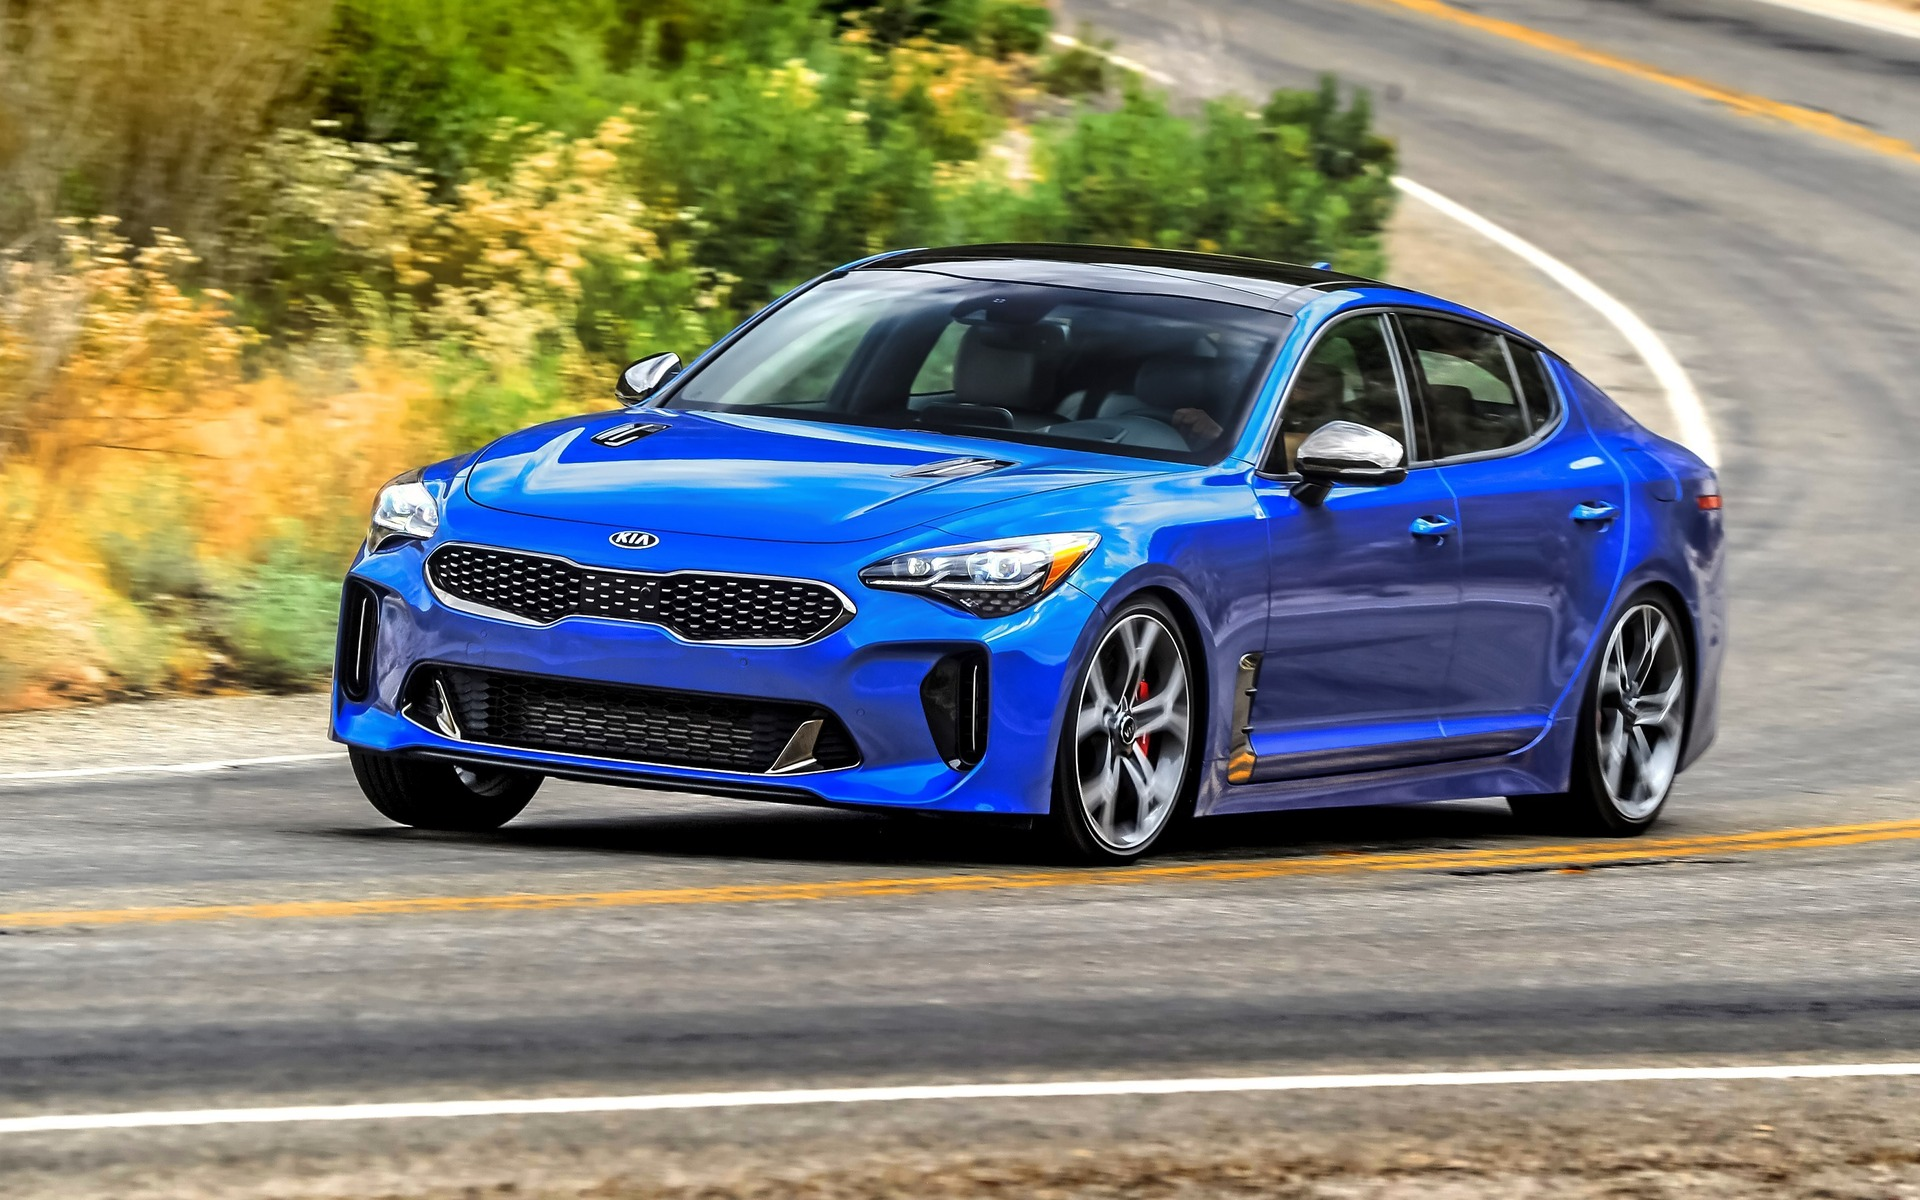 Kia Stinger Might not Come Back, Company Hints - The Car Guide